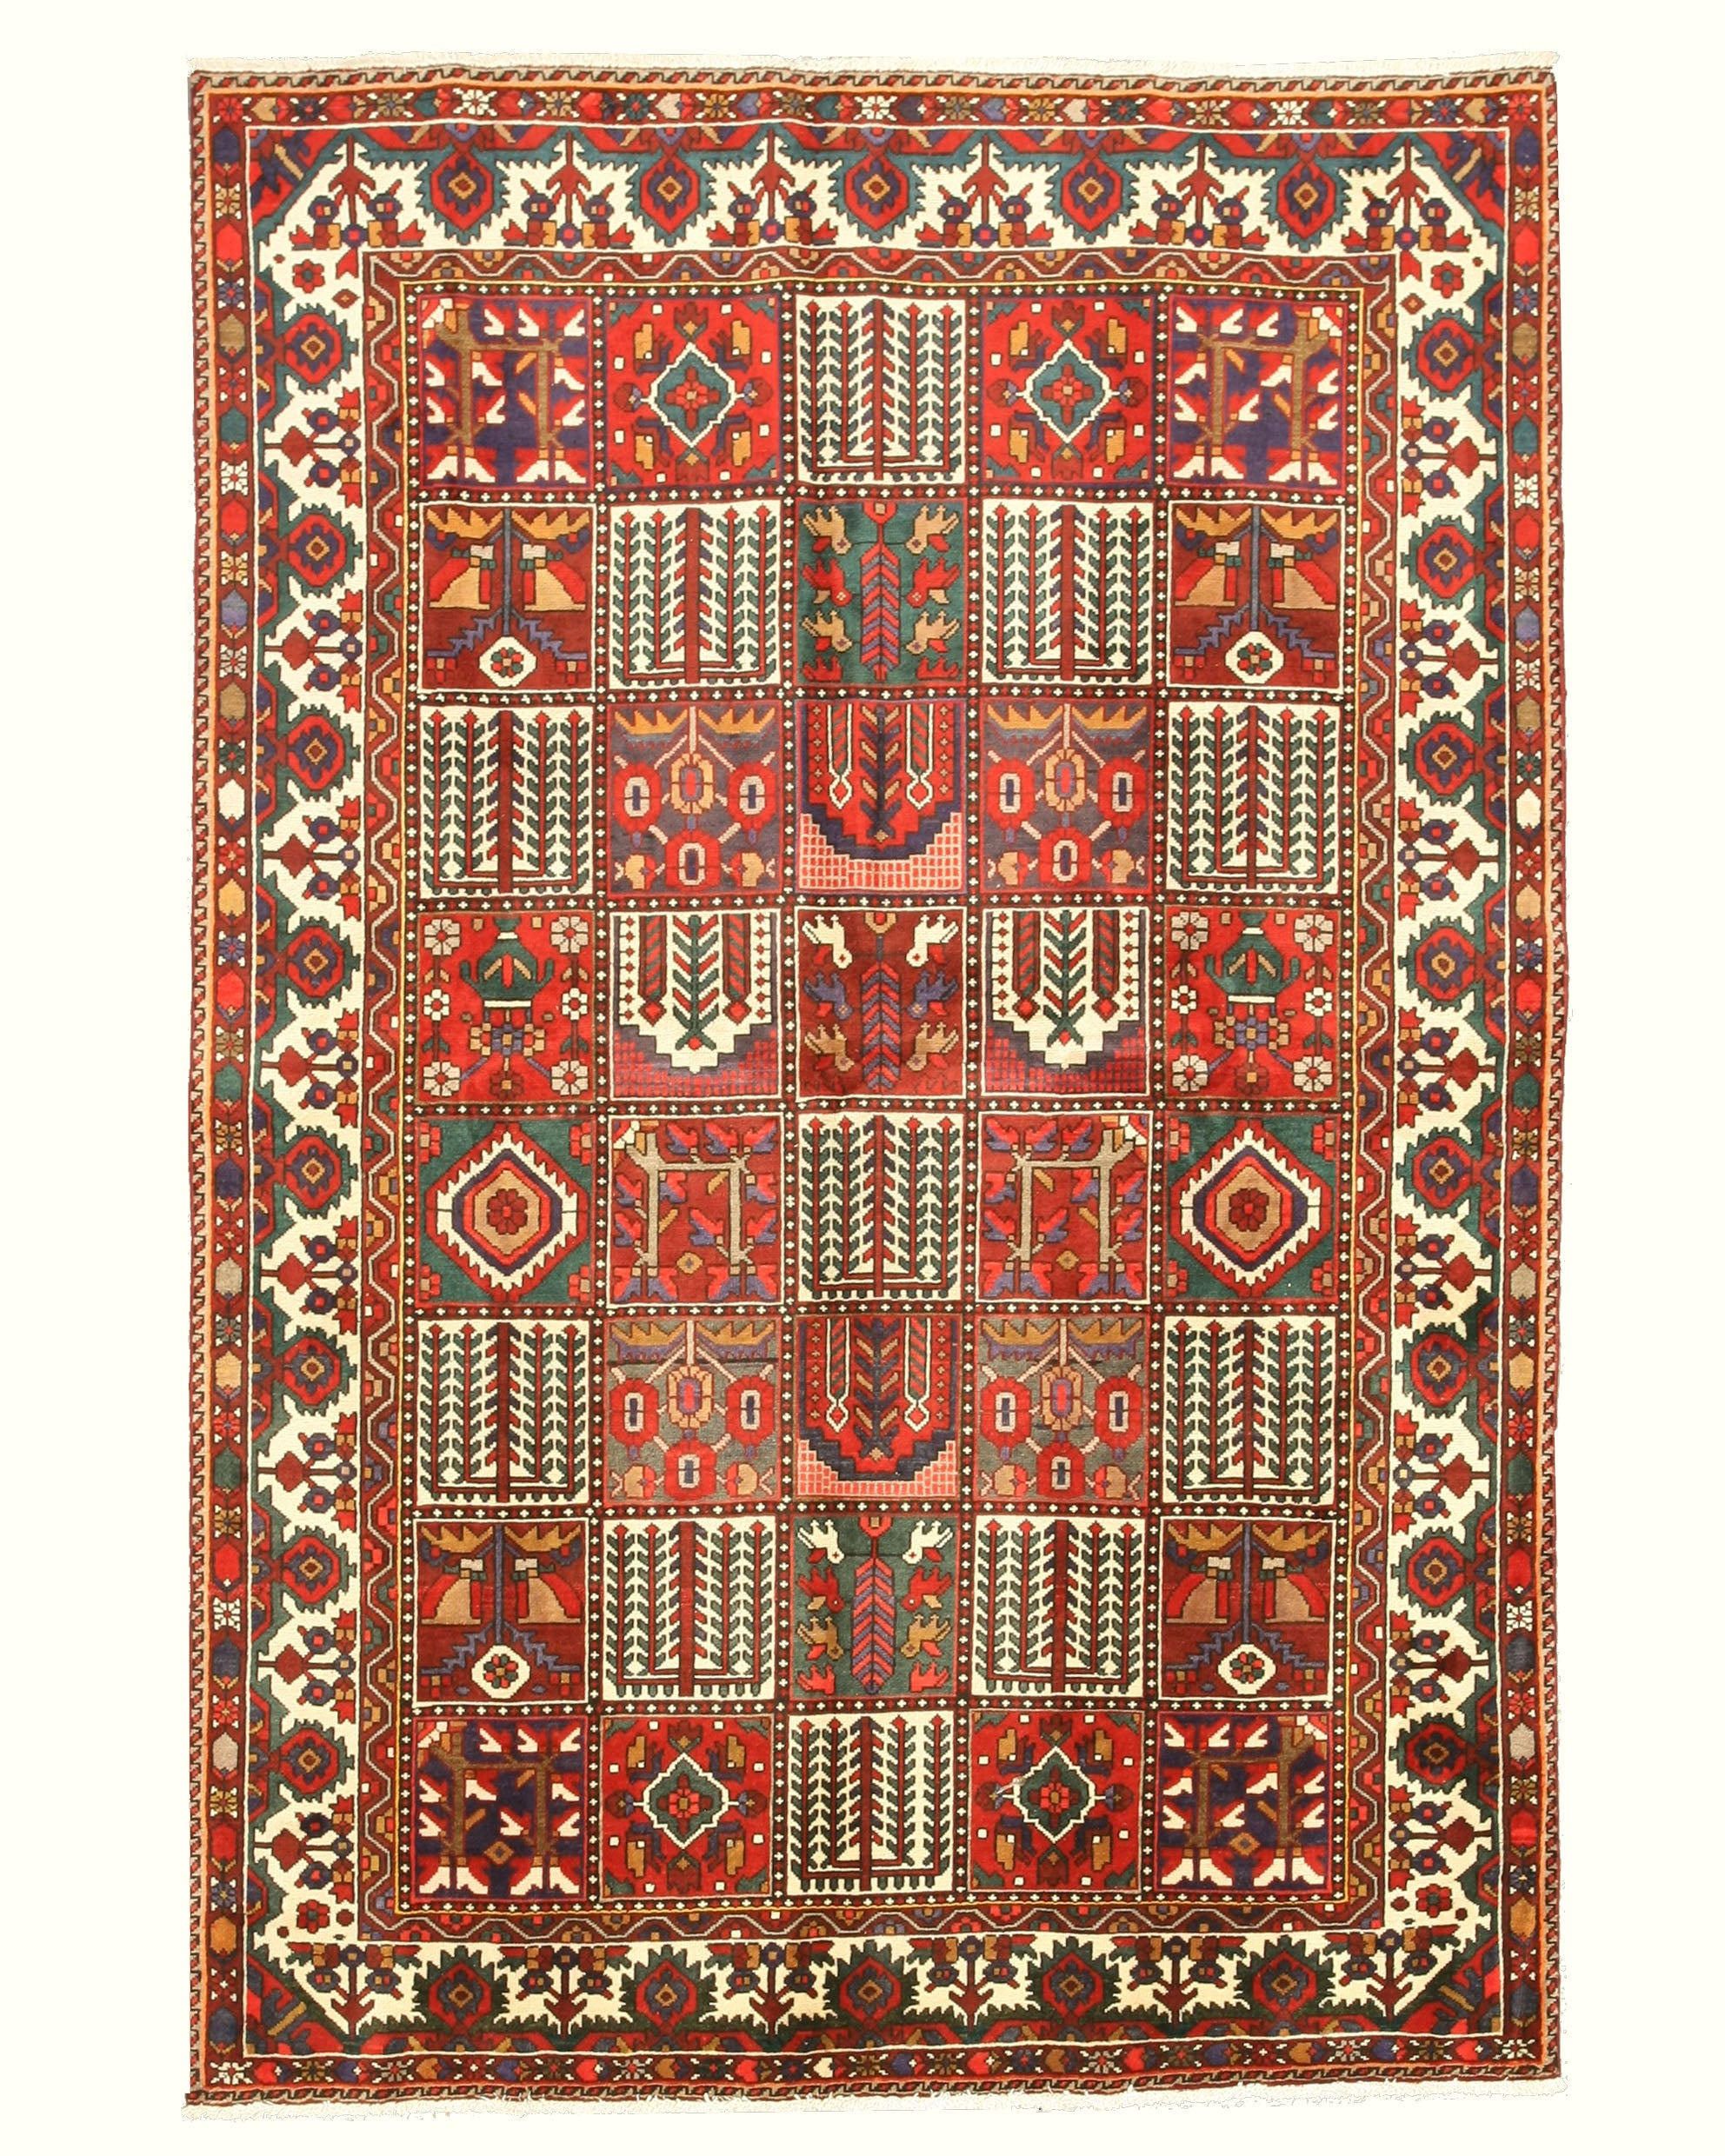 EORC Hand-knotted Wool Multicolored Traditional Oriental Bakhtiar Rug